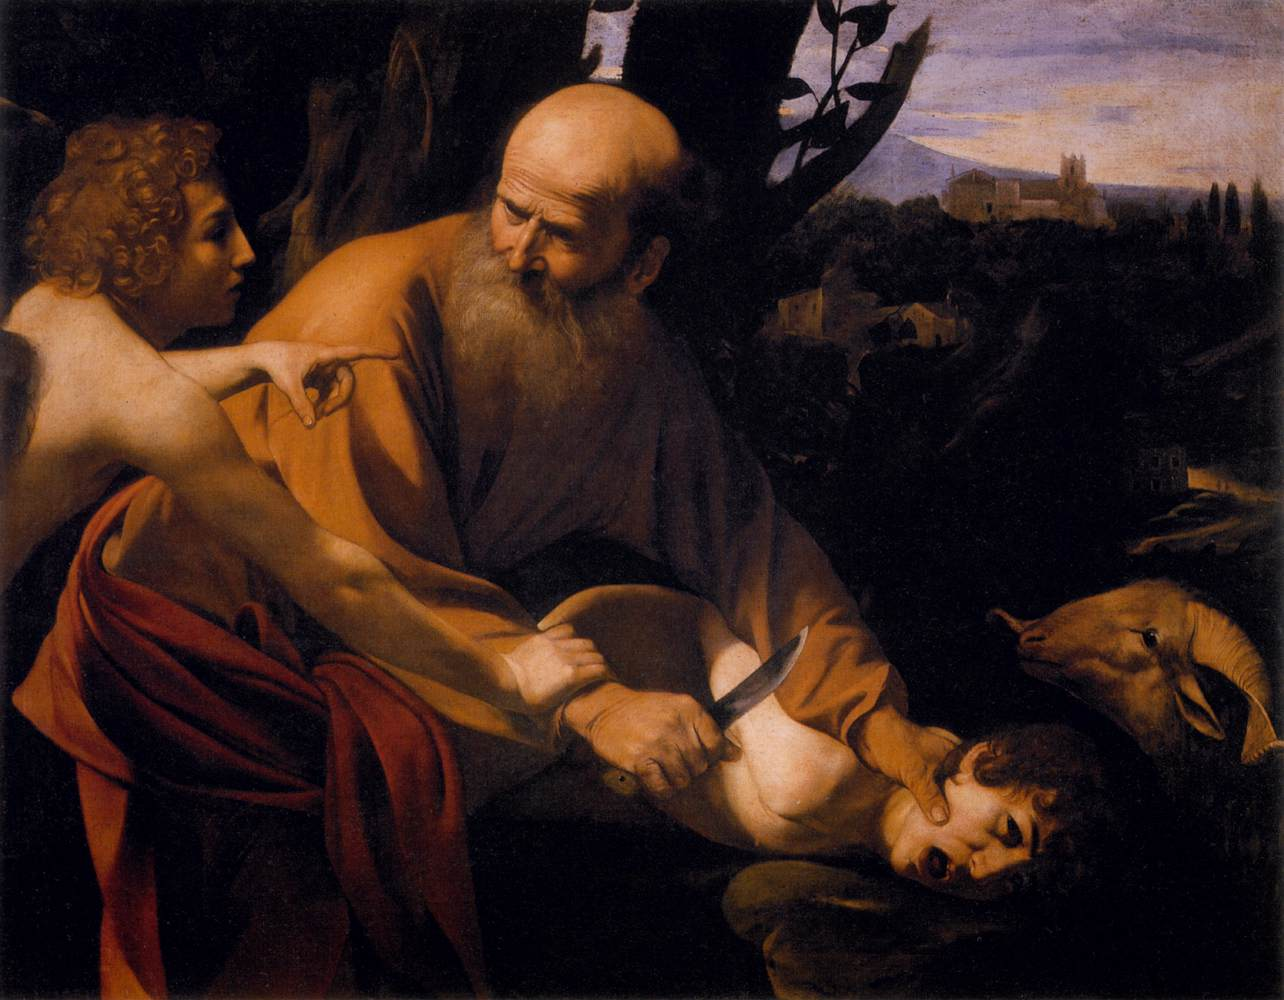 Caravaggio-The Sacrifice of Isaac